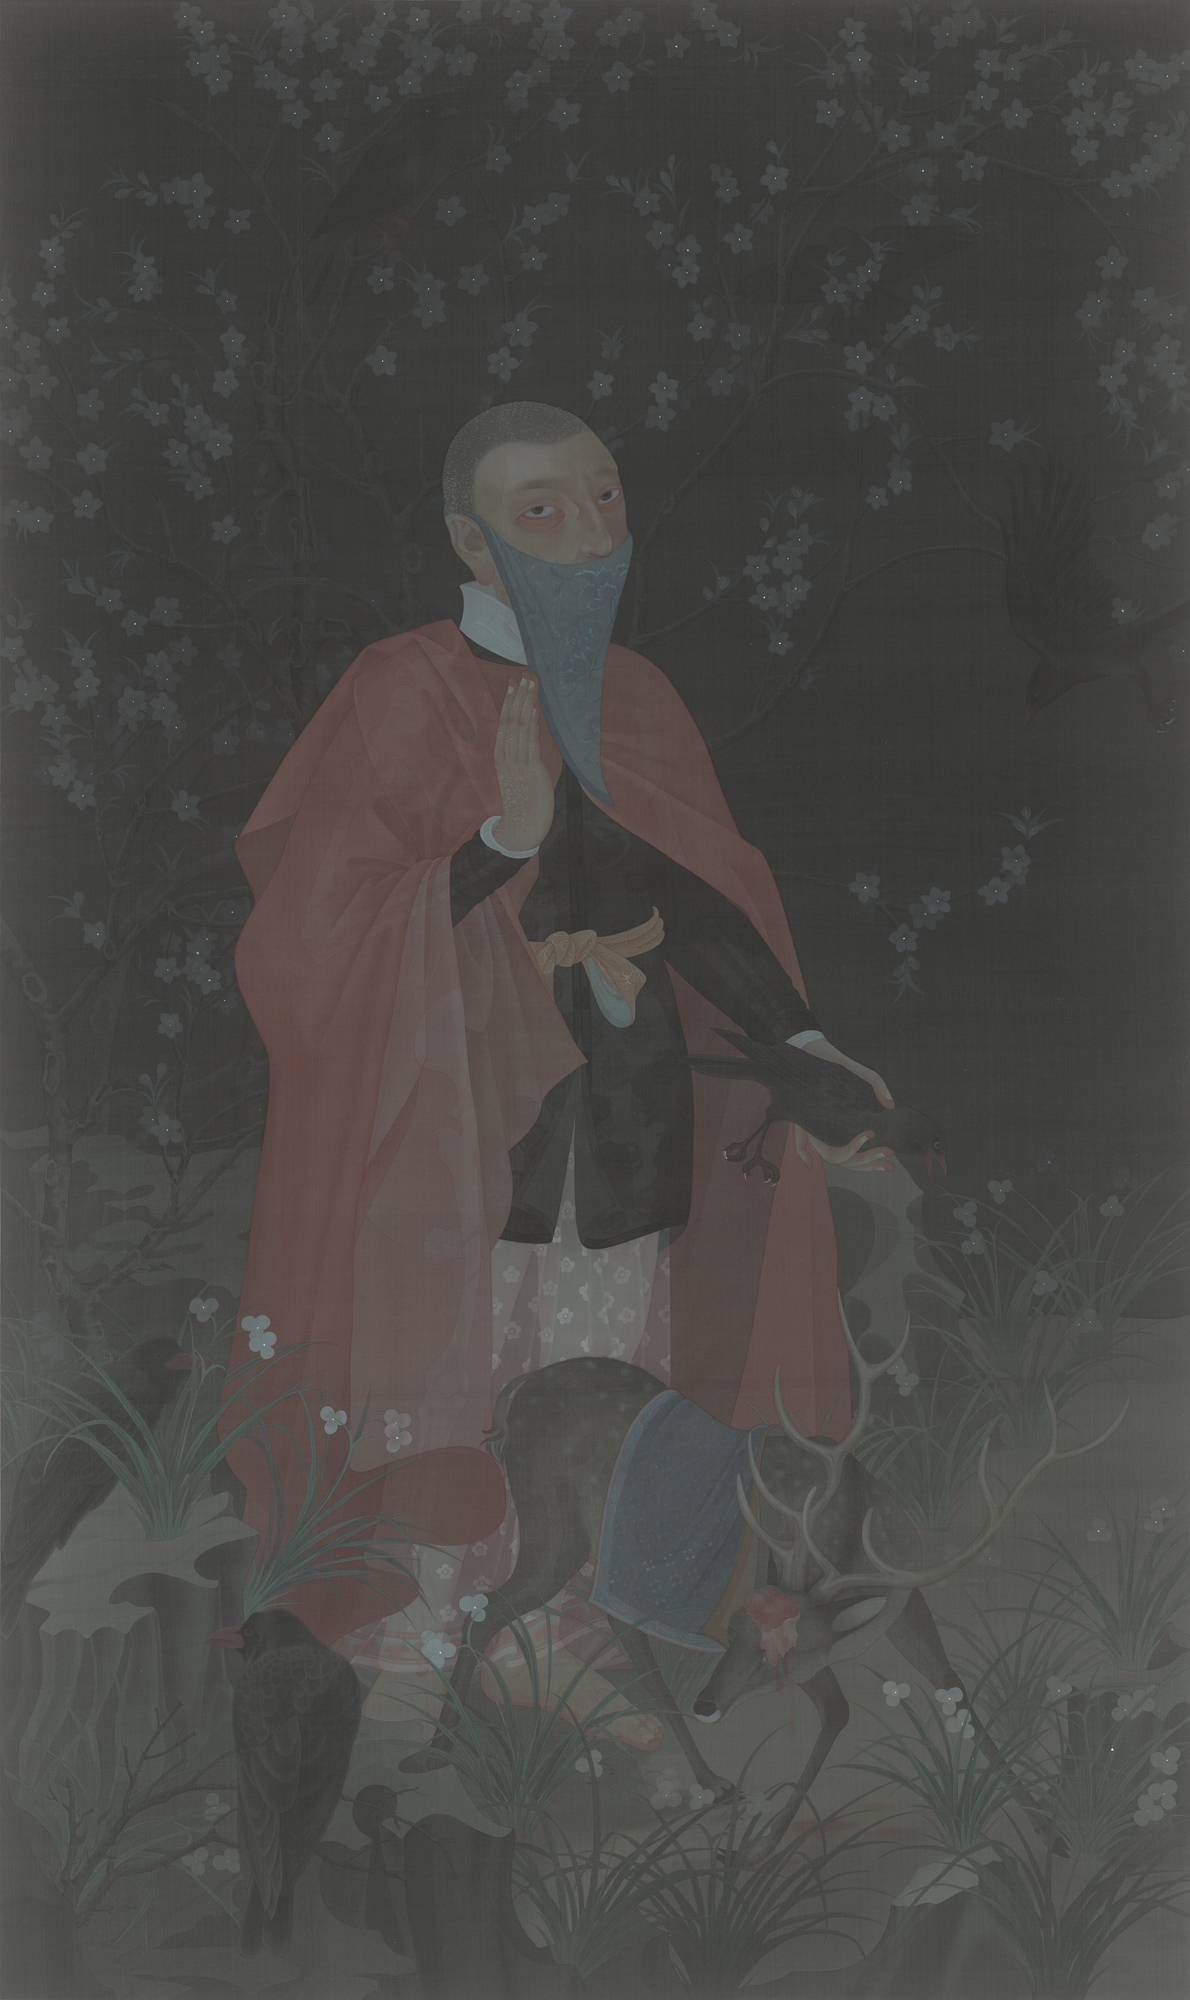 Hao Liang 郝量, Searching the Mountains 搜山图, 2011, Ink and color on silk 绢本重彩, 240 x 150 cm